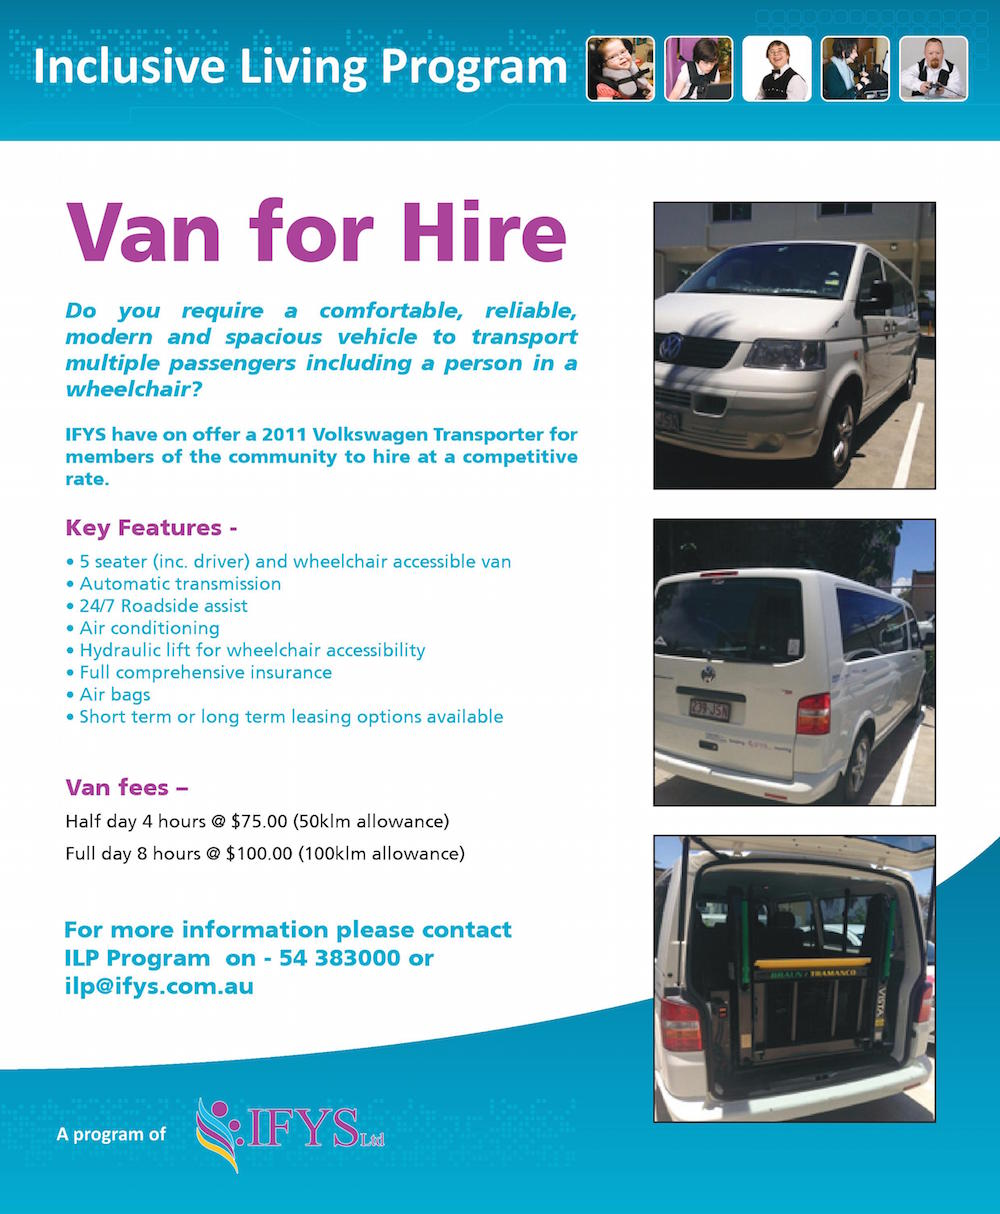 Inclusive Living Program Community Van for Hire